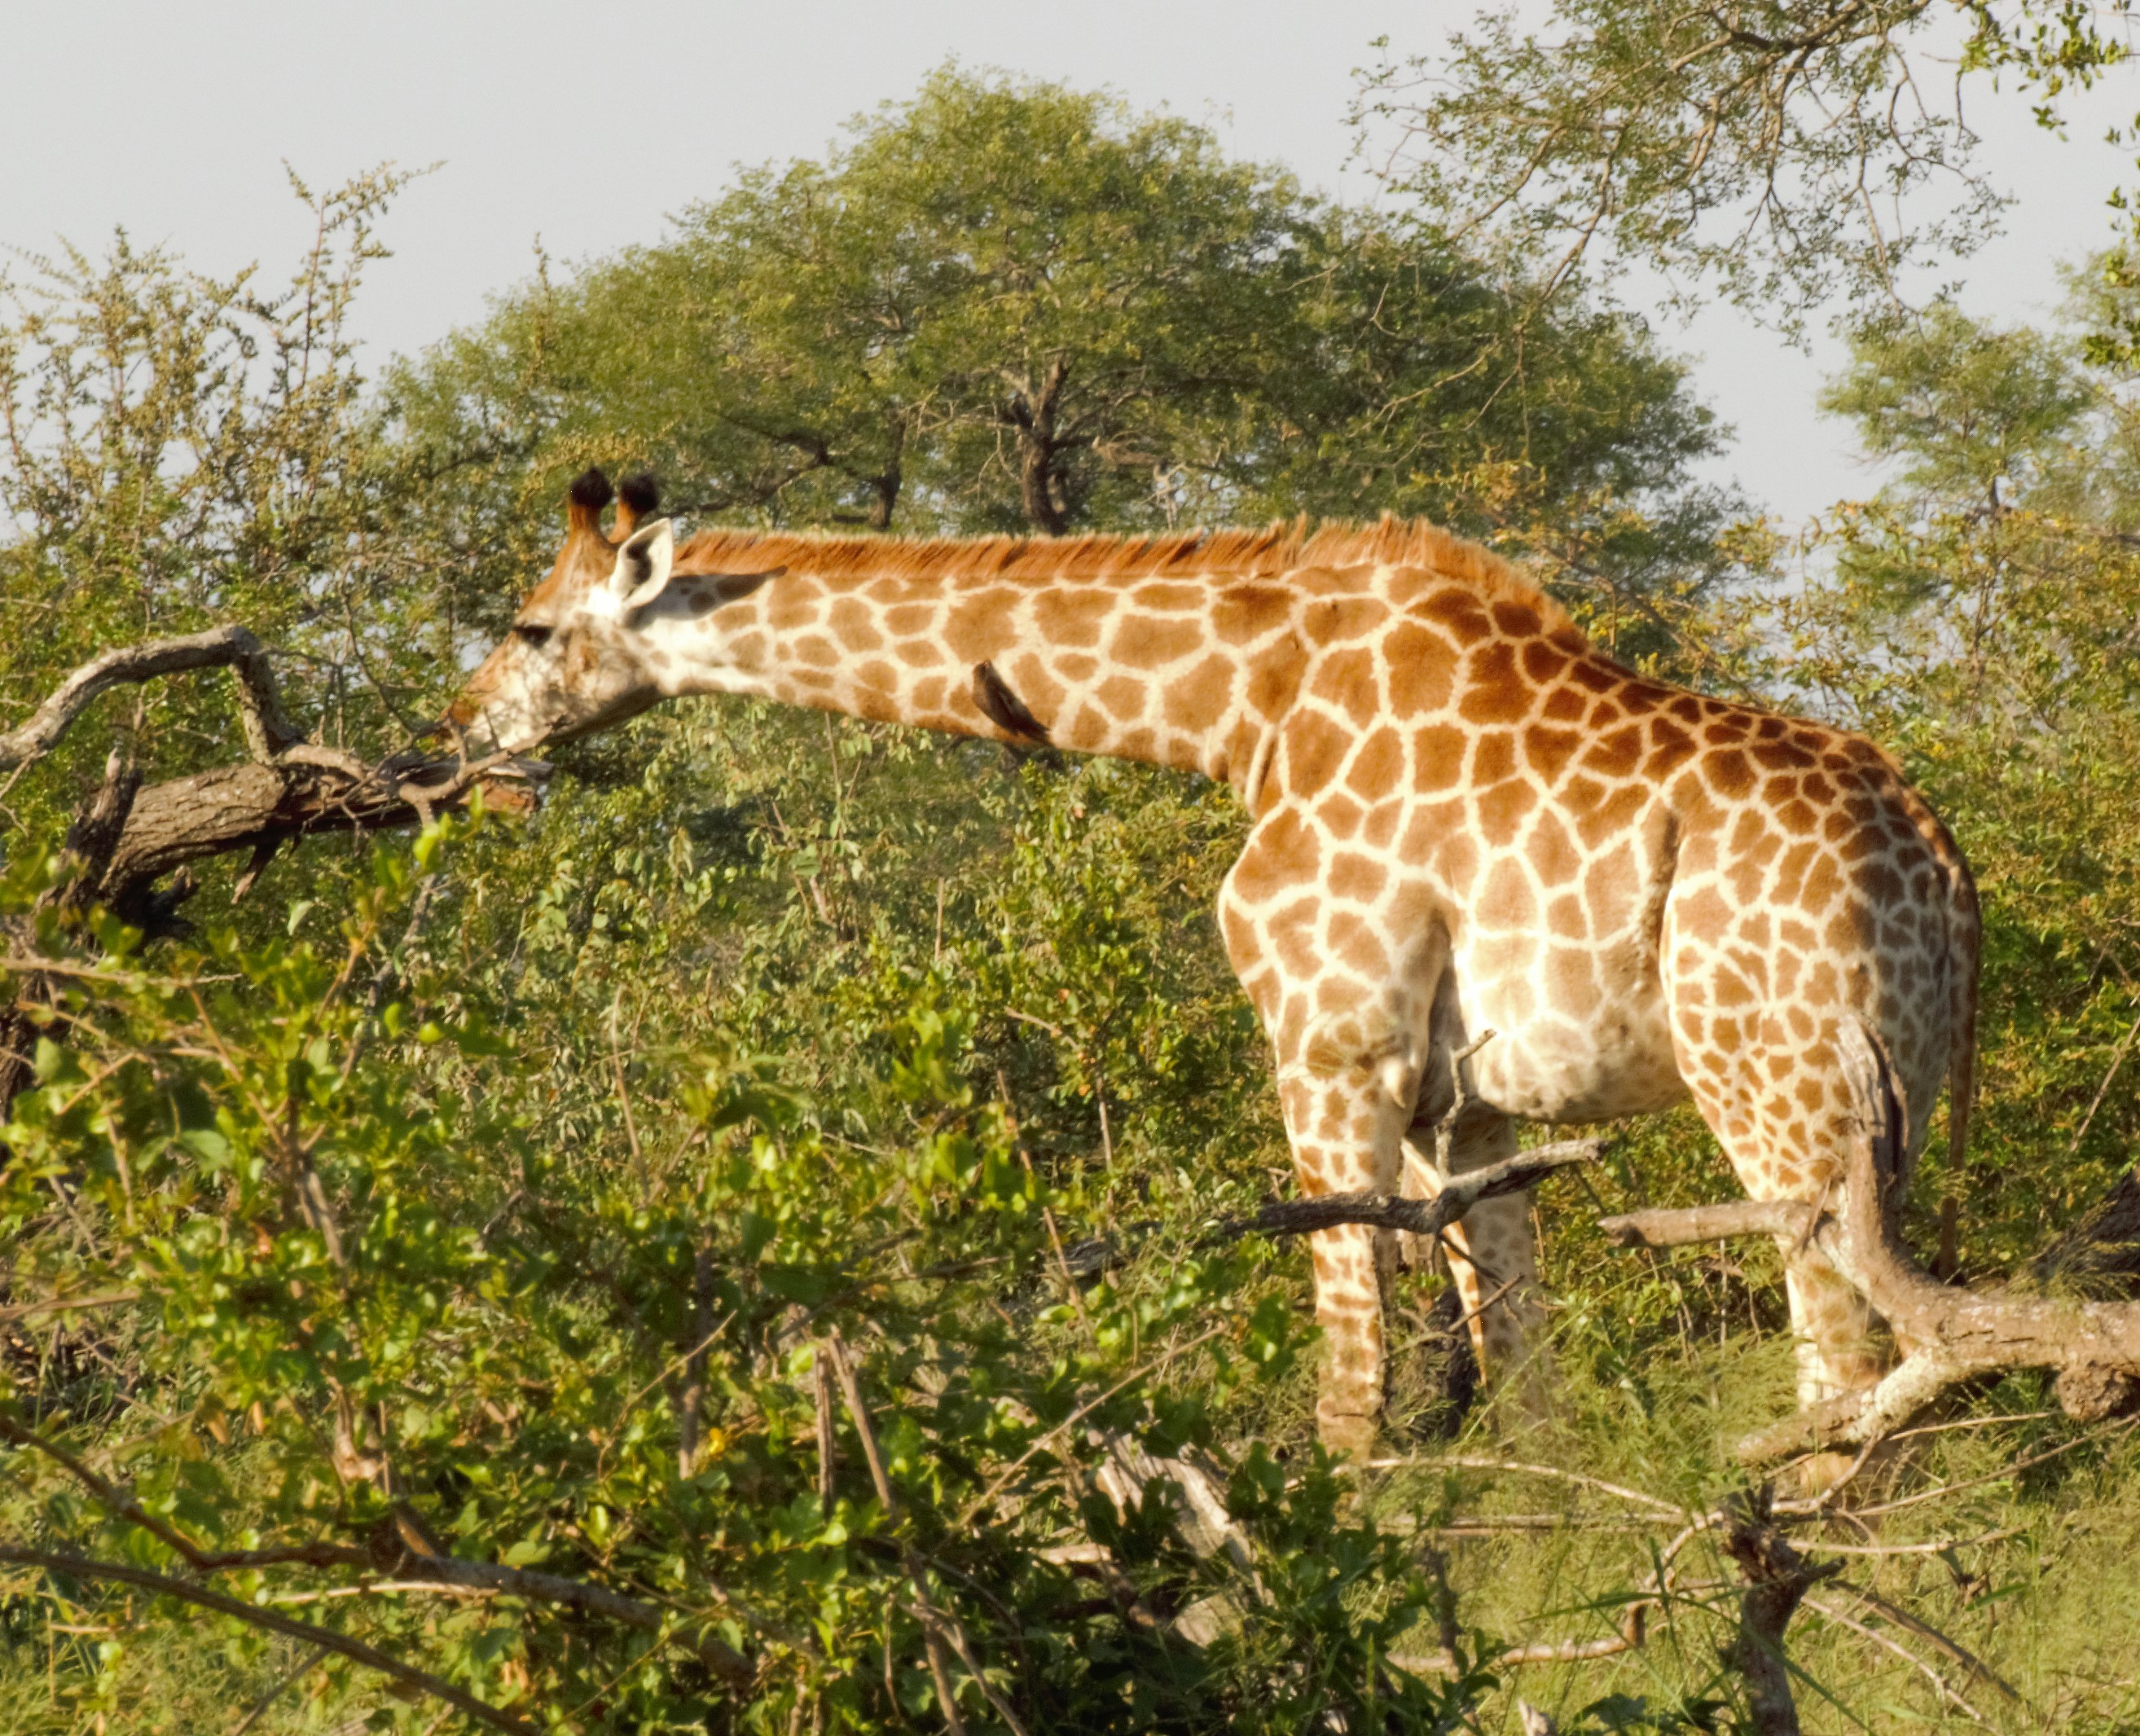 Giraffe feeding  on Acacia_0104